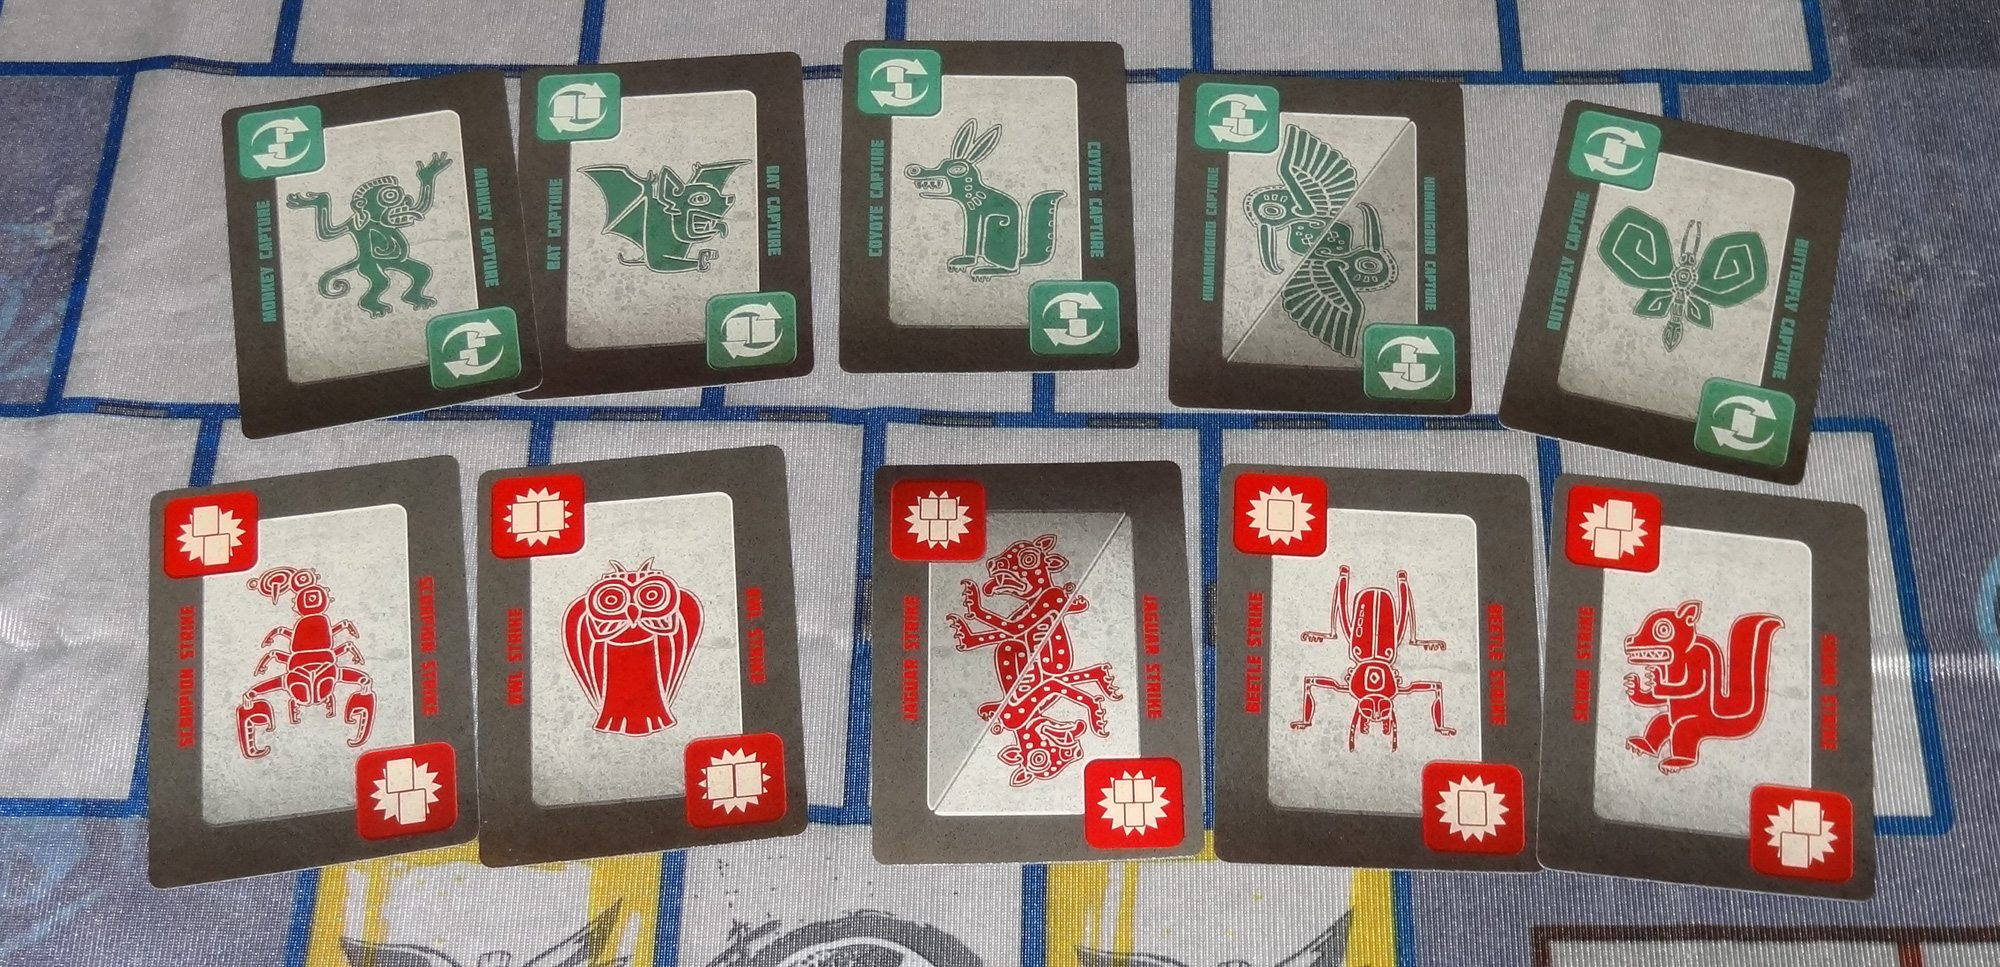 Serpent Stones cards